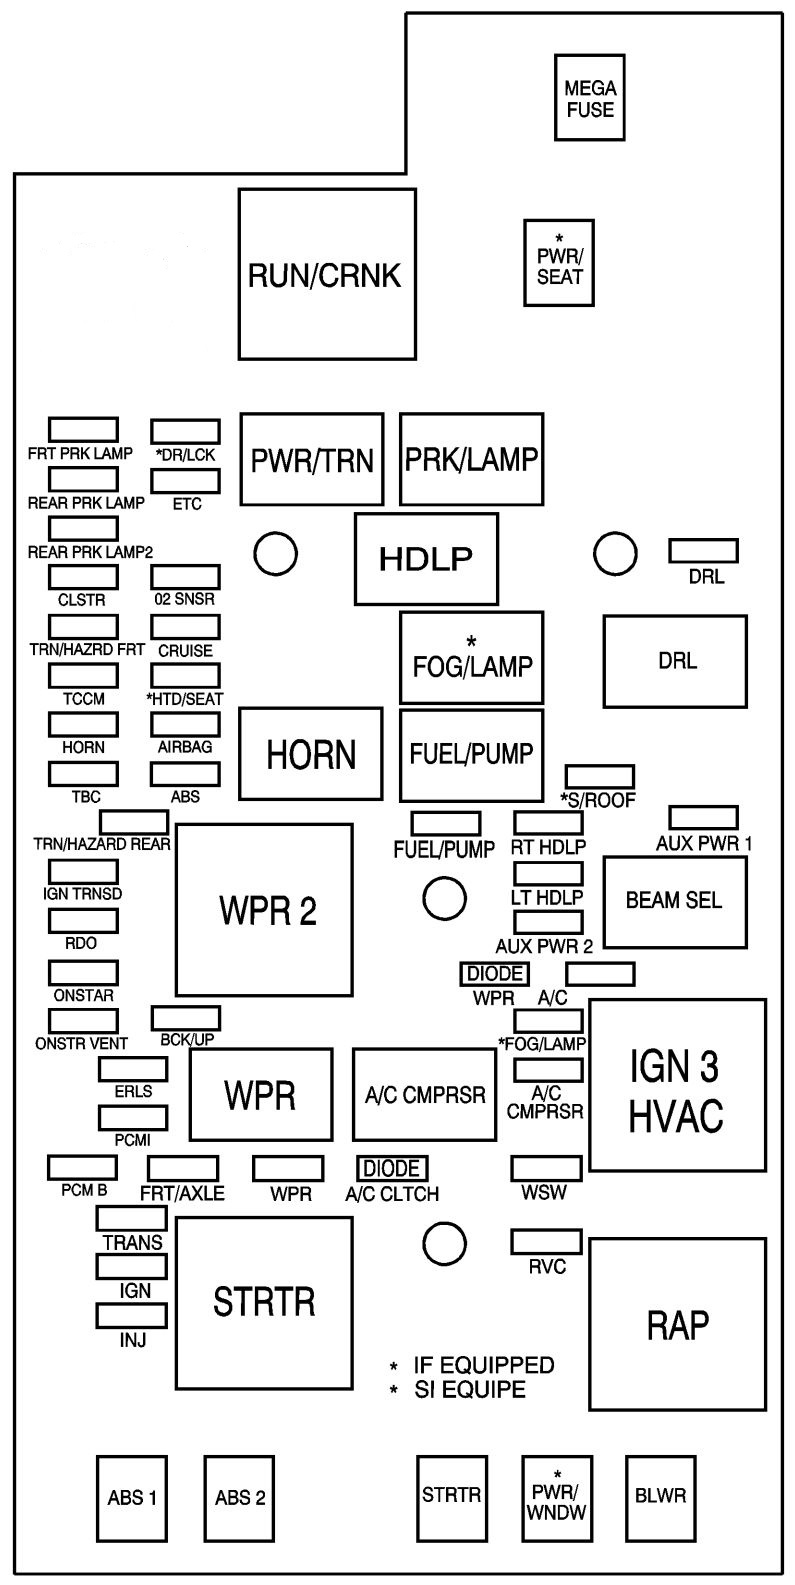 hight resolution of 2012 prius fuse diagram wiring diagrams sapp 2012 prius wiring diagram 2012 prius fuse diagram